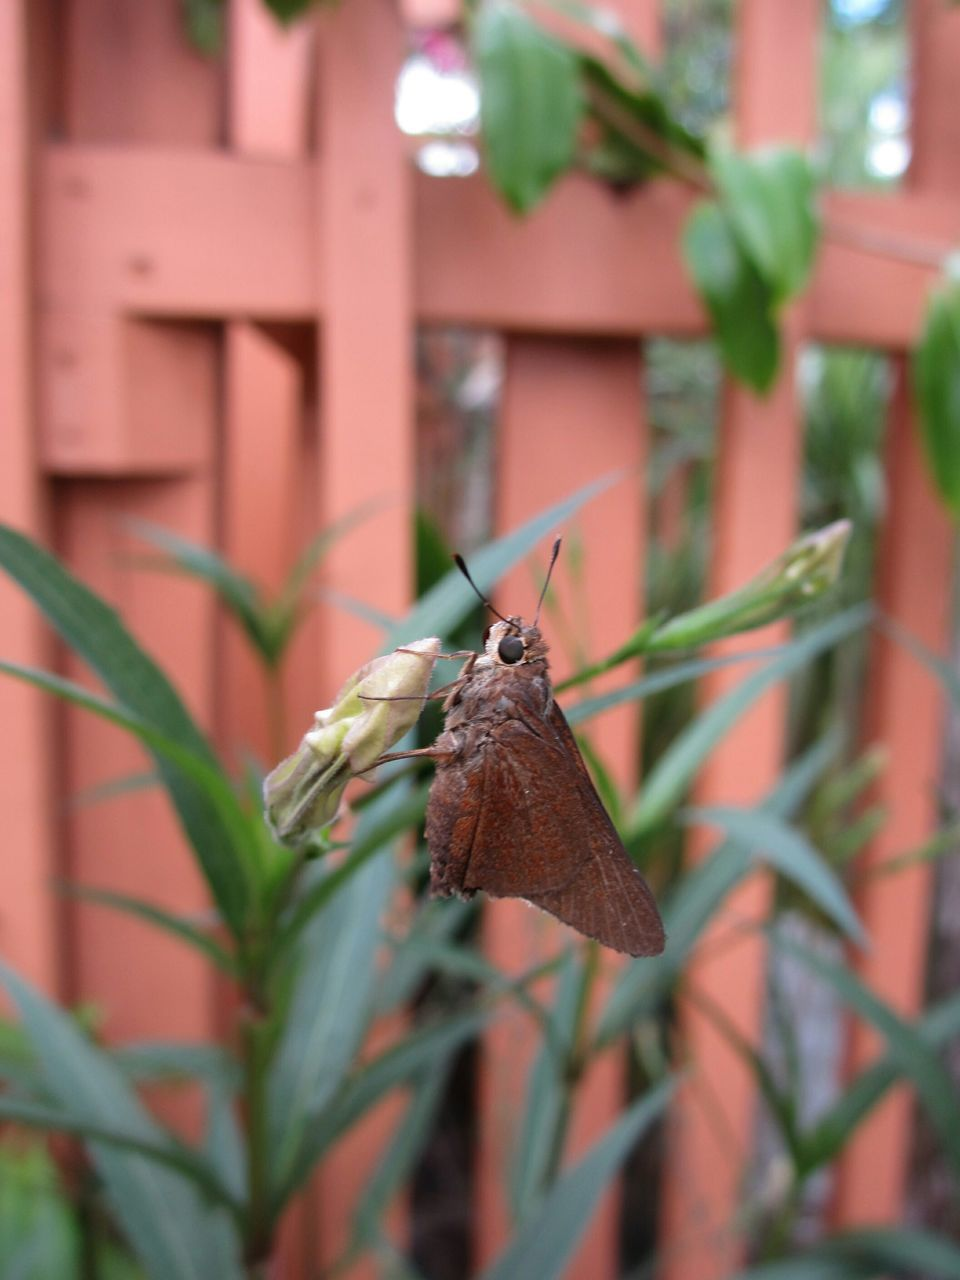 Close-Up Of Brown Moth On Flower